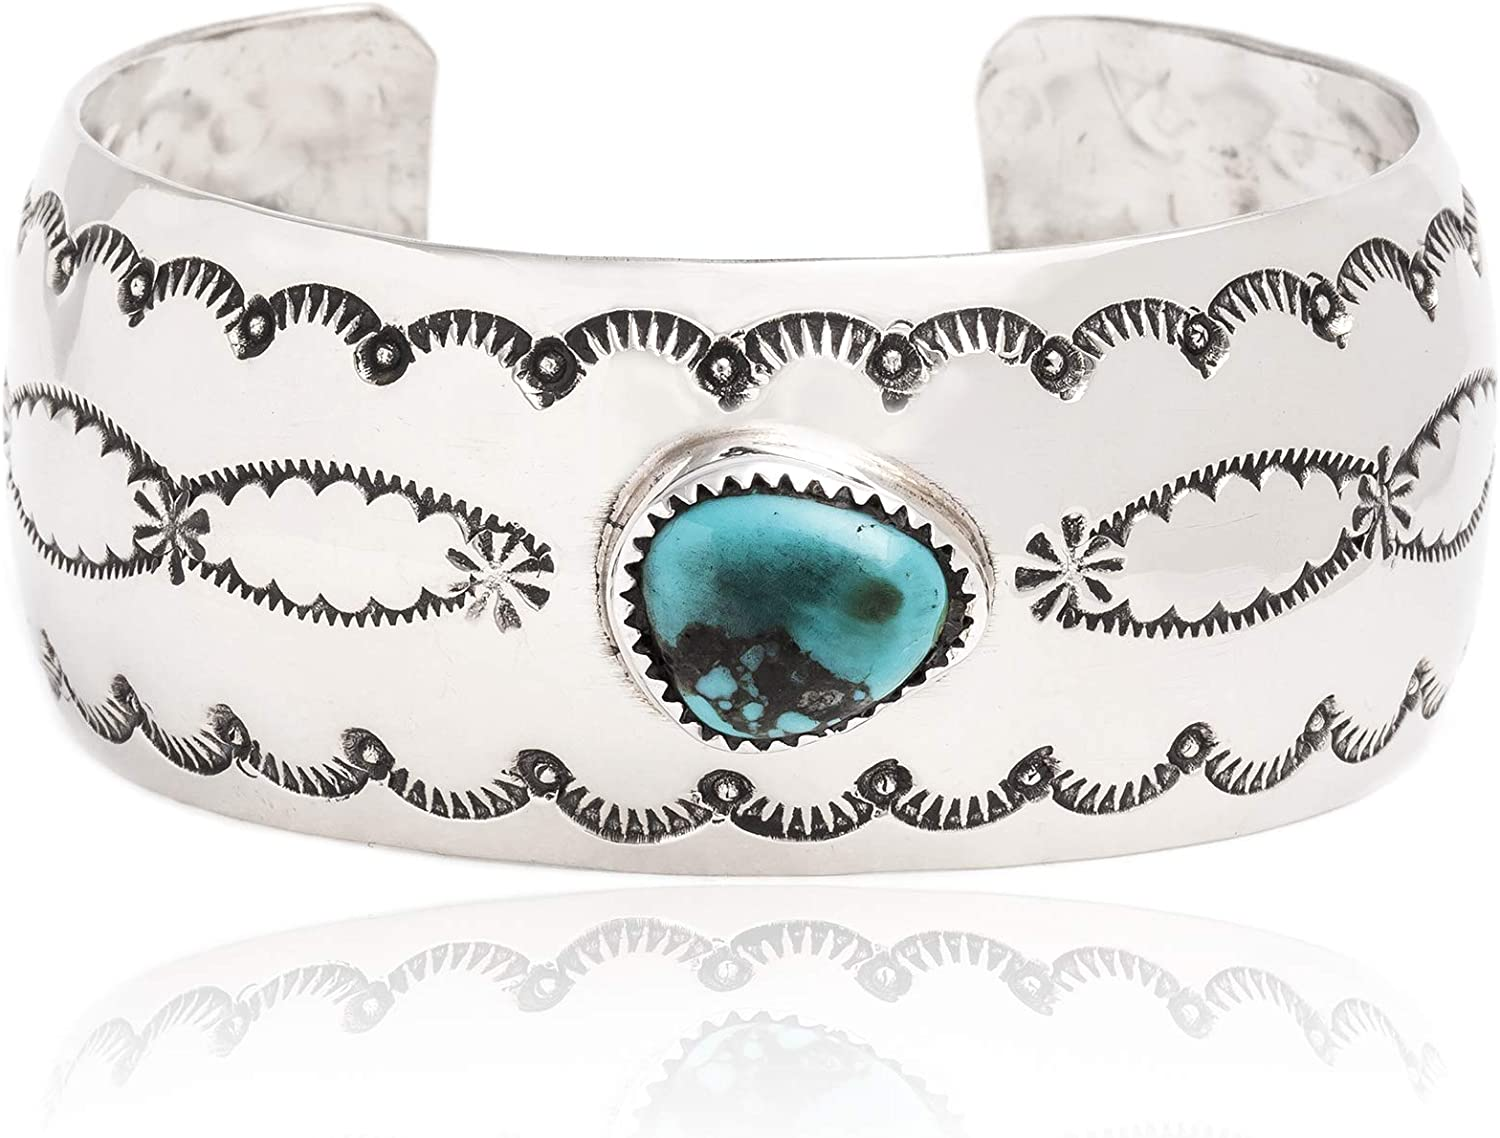 $250Tag Sun Nickel Certified Navajo Native Natural Turquoise Cuff Bracelet 12877 Made by Loma Siiva 71wG-p06d5LUL1500_